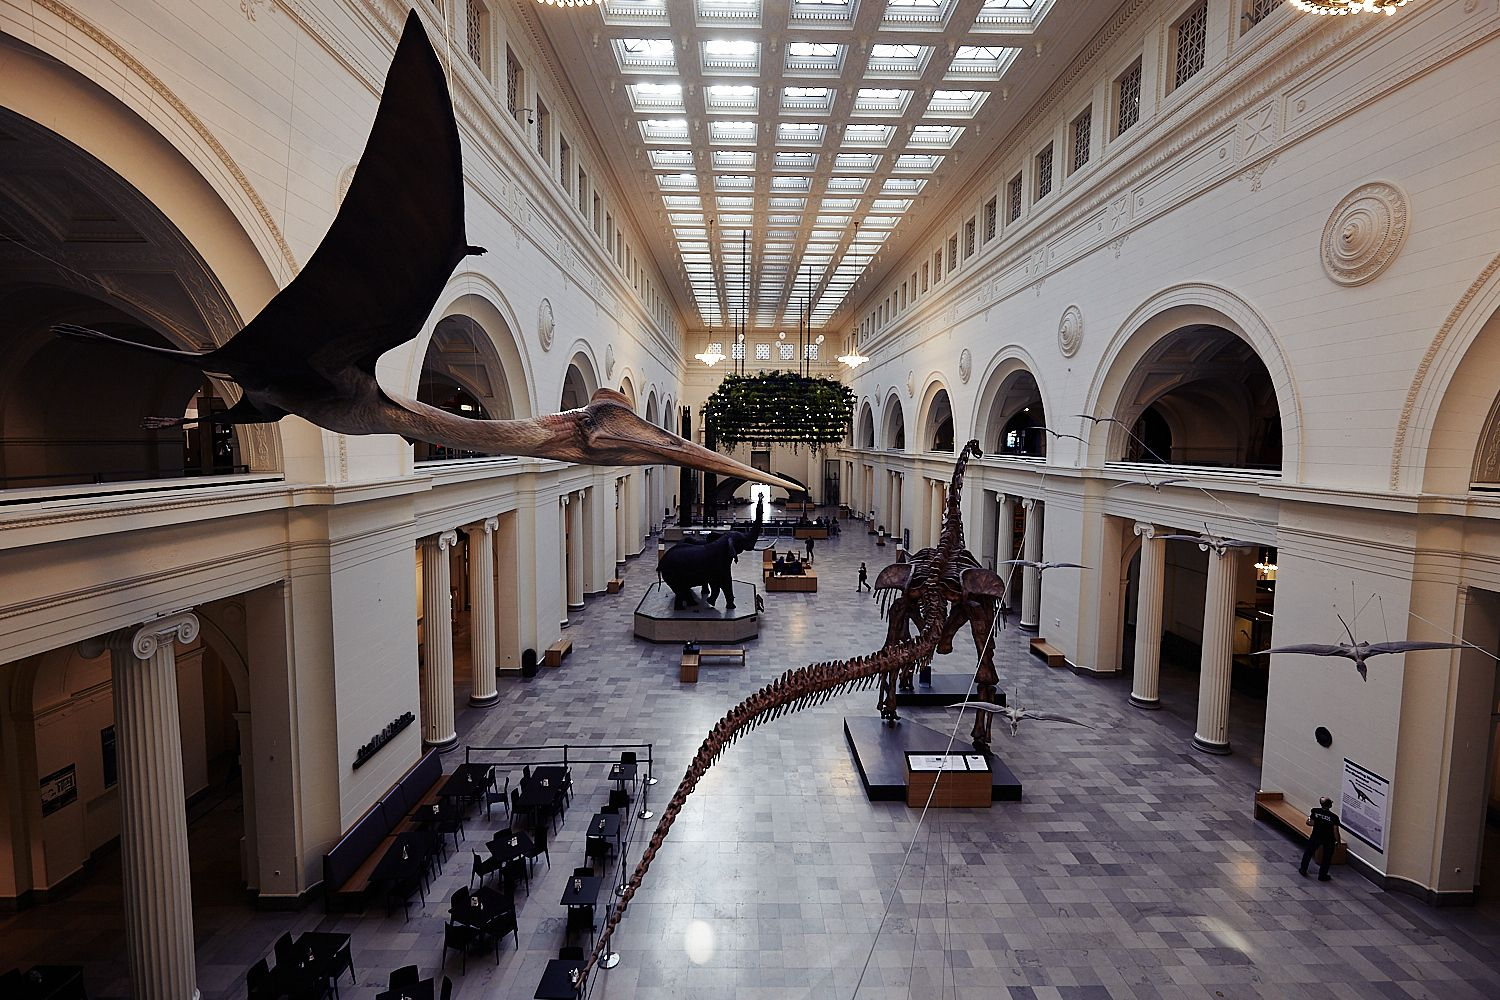 Another shot of the great hall inside the @FieldMuseum.   #mr_eaves #chicago #mychicagopix #chicagogram #igerschicago #insta_chicago #chitecture #wu_chicago #enjoyillinois #chitown #chigram #windycity #likechicago #illinois #choosechicago #chicity_shots #chiarchitecture #chicagoshots #explorechicago #thisischicago #chicagolife #instachicago #chicity #midwestmoment